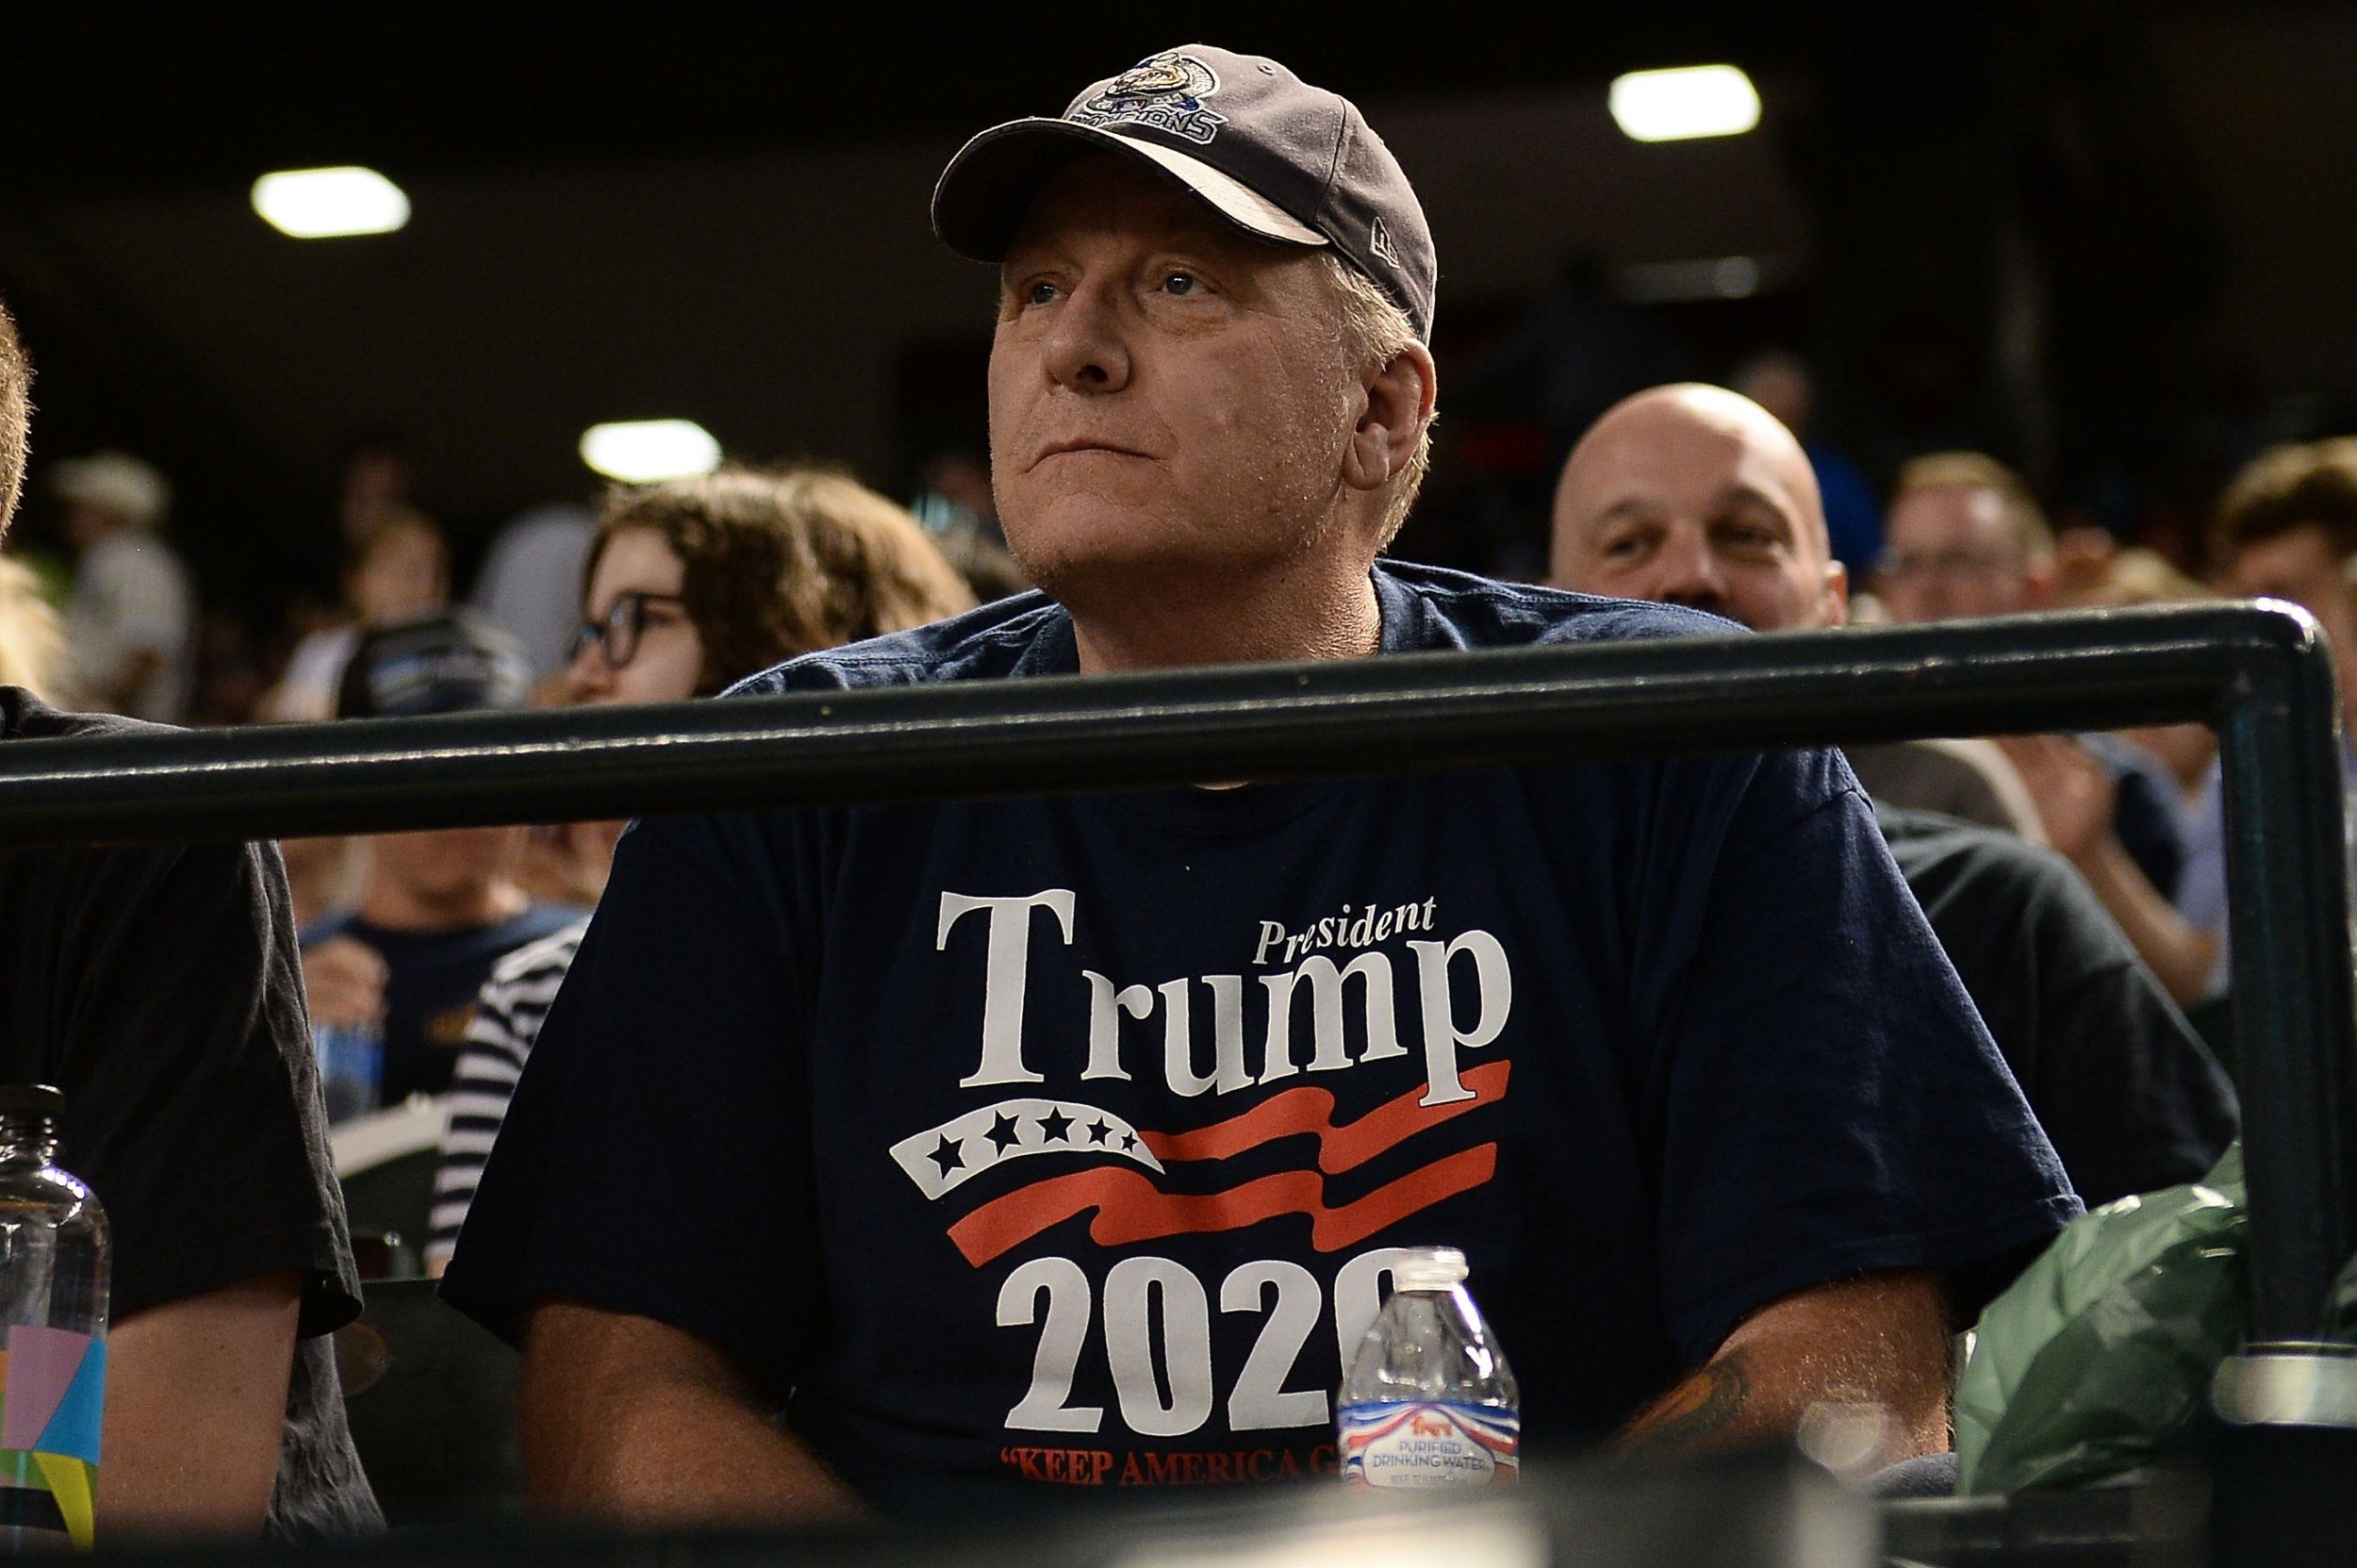 Curt schilling baseball hall of fame donald trump support